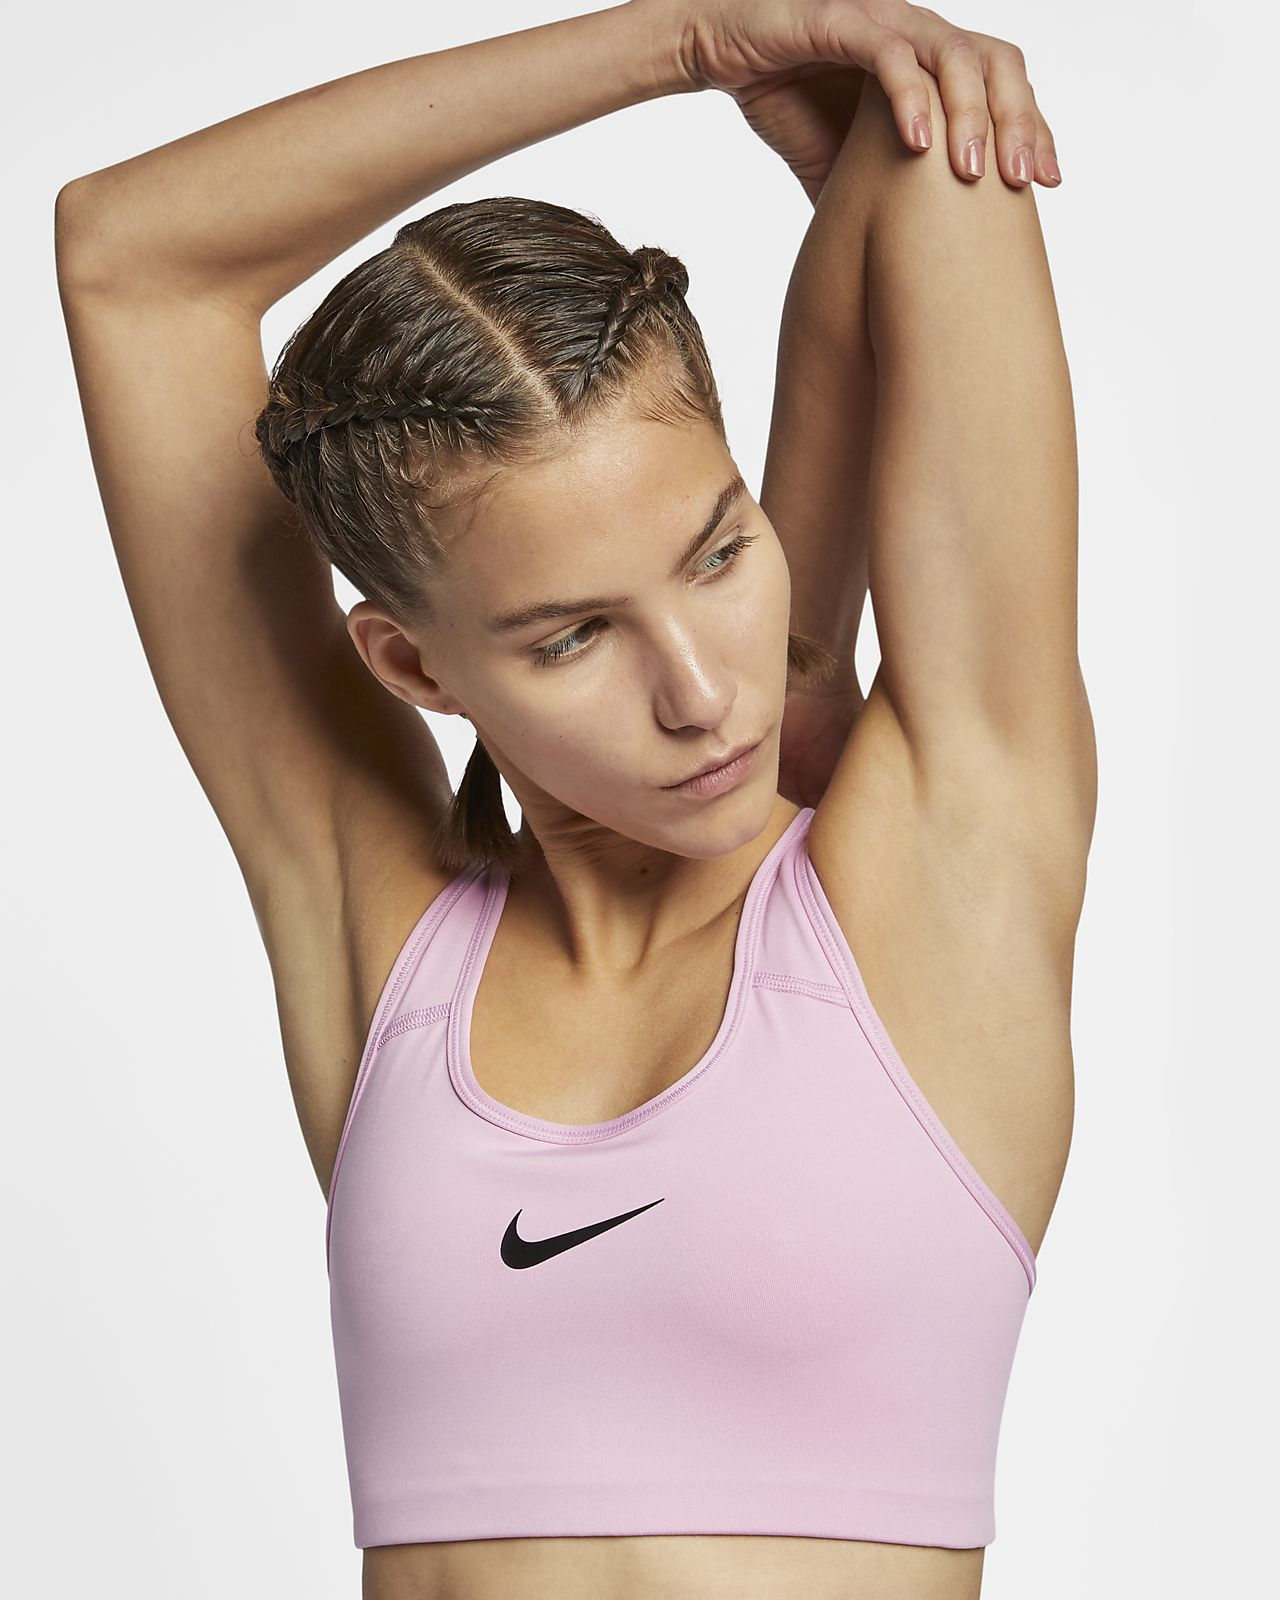 54ad0bdff83b4 Nike Women s Swoosh Medium-Support Sports Bra